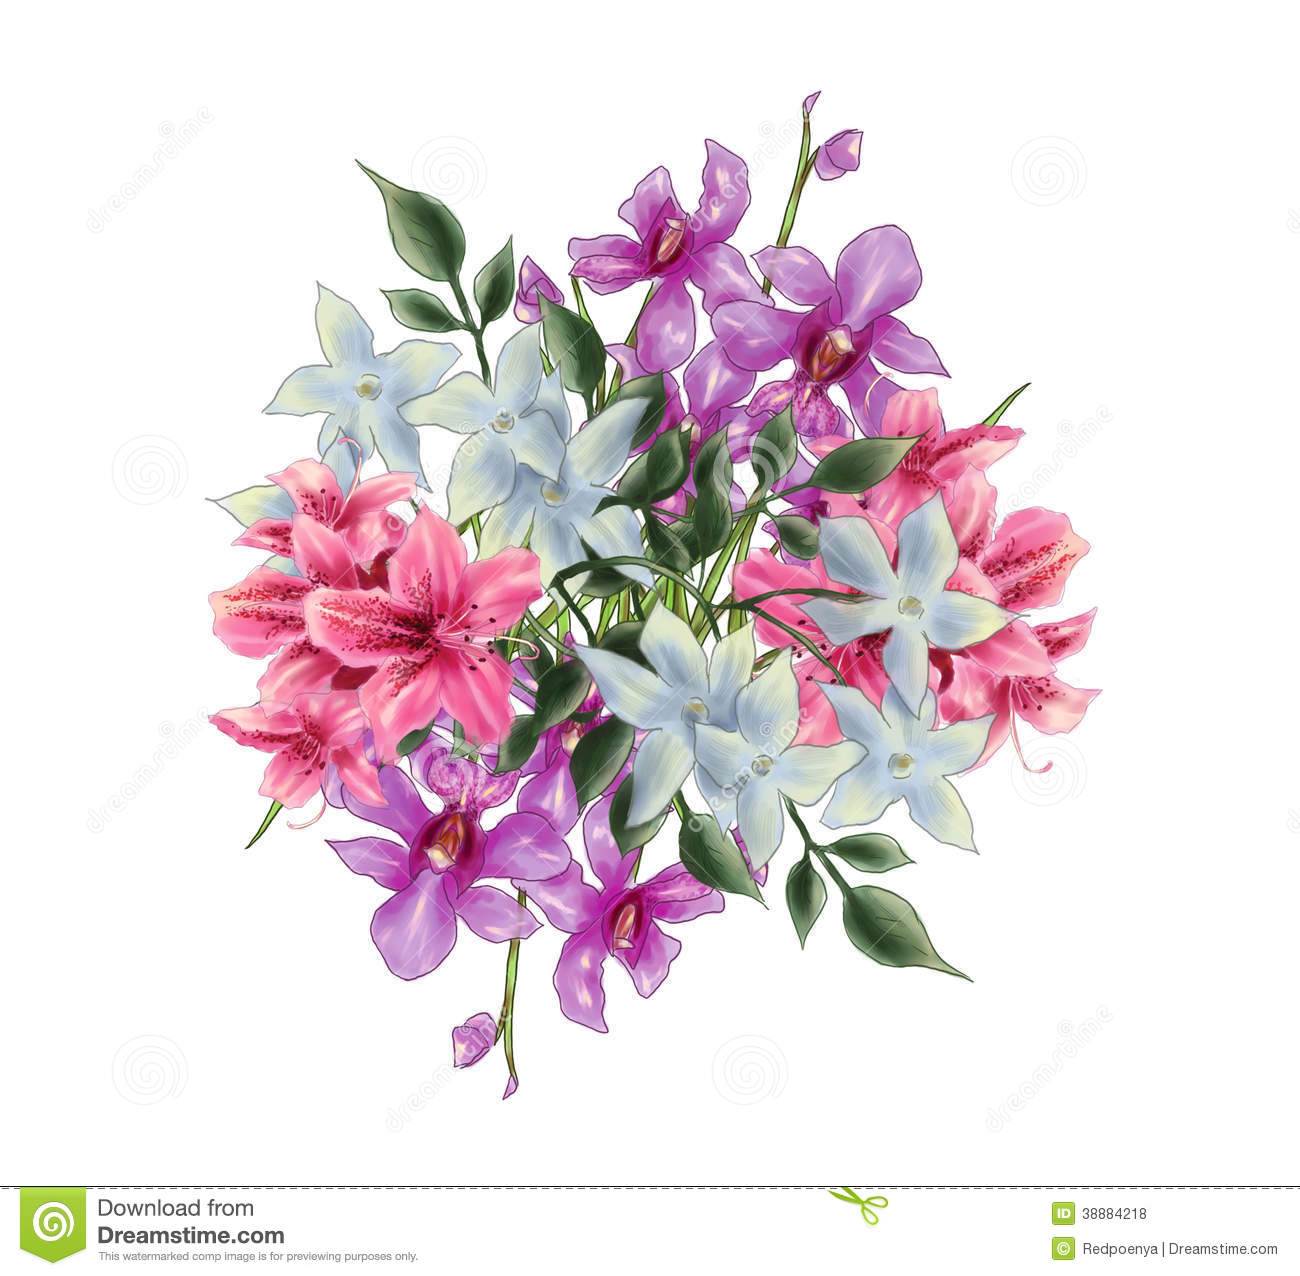 bouquet of flower illustration consist of Vanda Miss Joaquim orchid ...